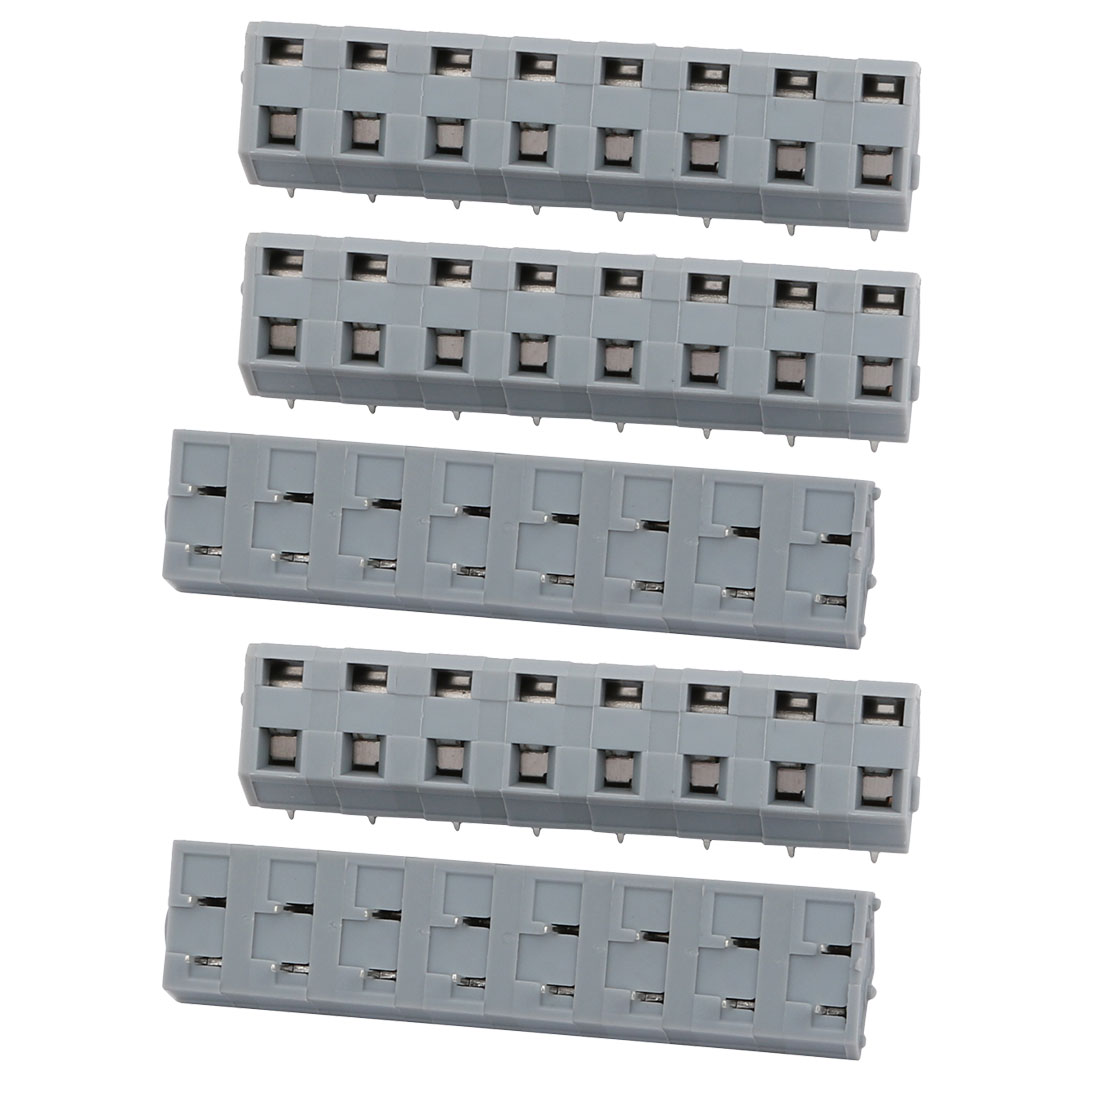 Unique Bargains 5pcs KKF243A 300V 15A 7.5mm Pitch 8P Spring Terminal Block for PCB Mounting - image 1 of 2